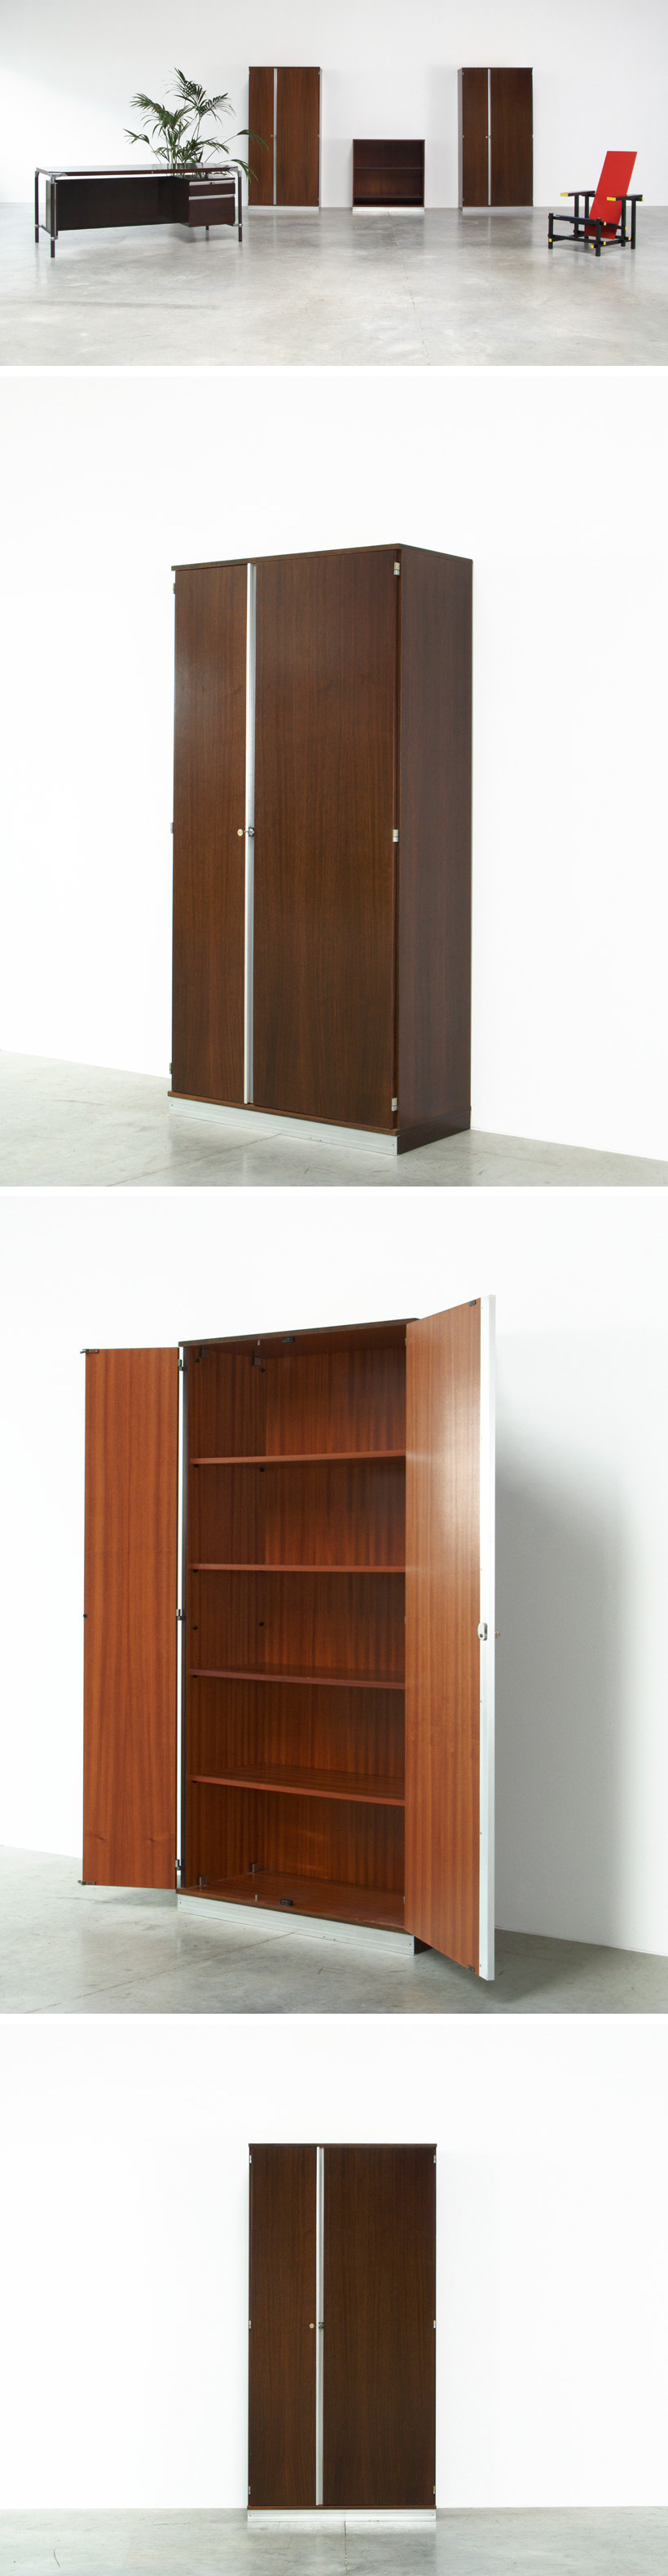 Luisa and Ico Parisi for MIM office cupboard Large